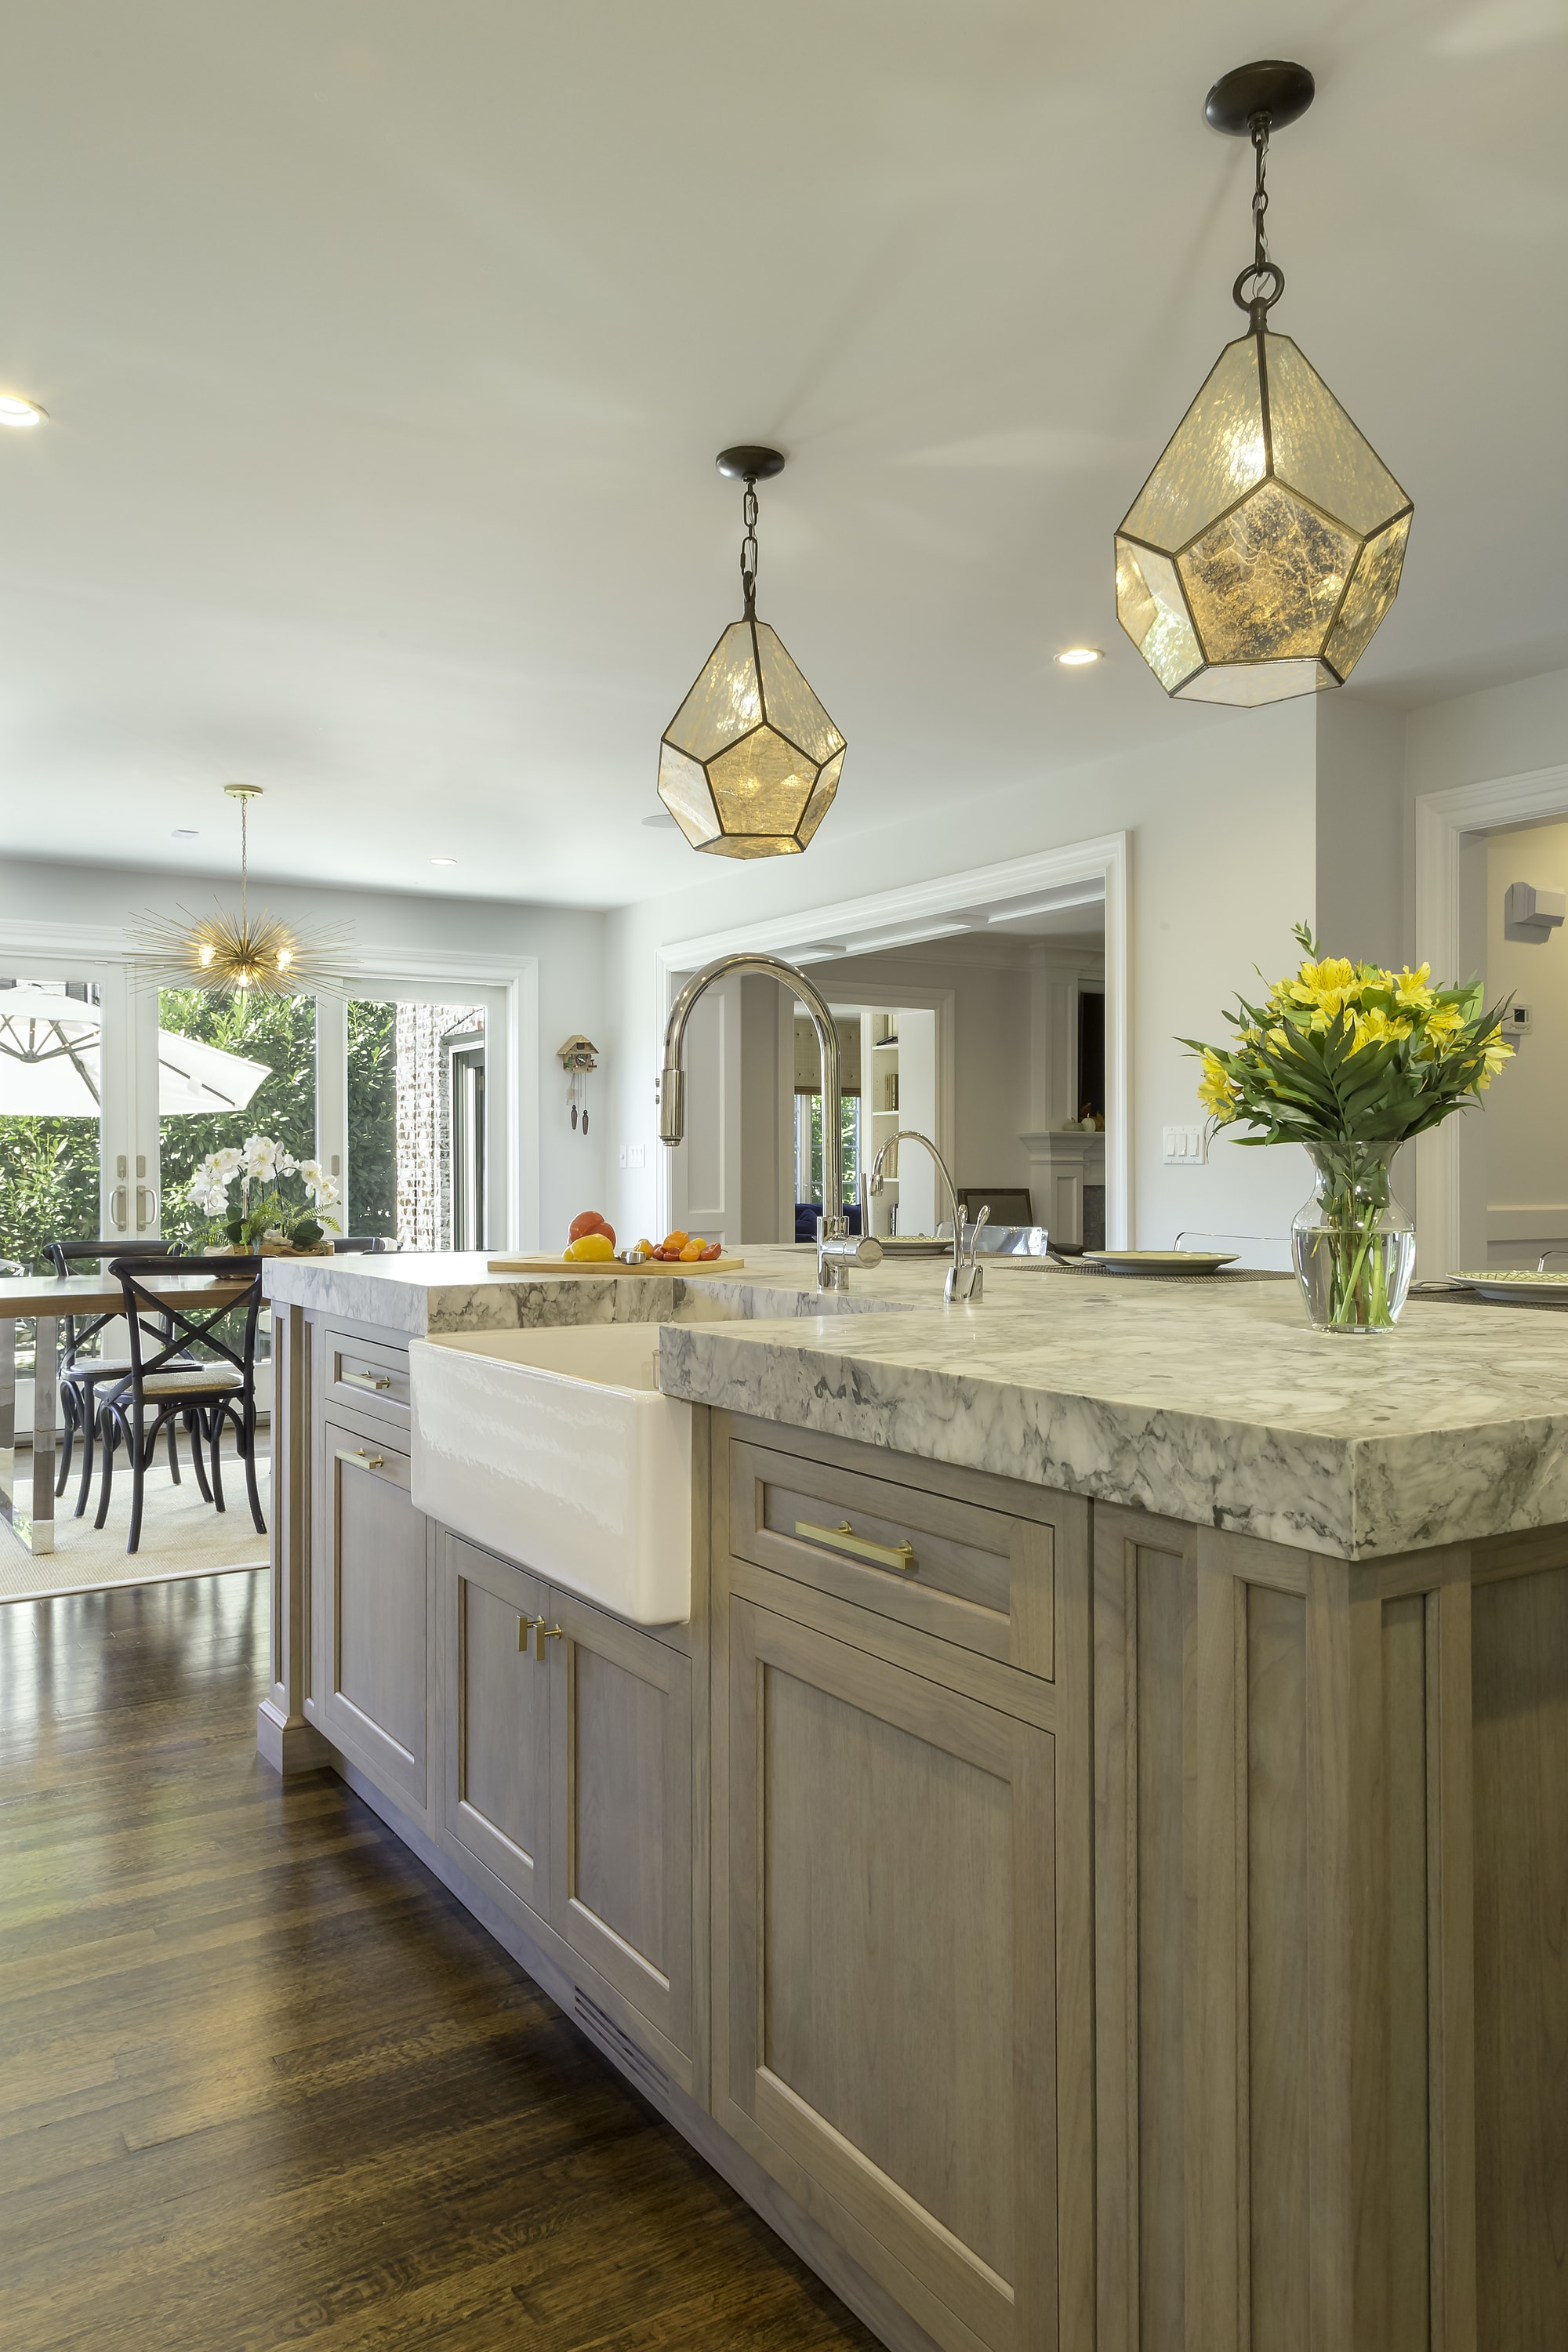 Transitional style kitchen with single hand faucet and sink